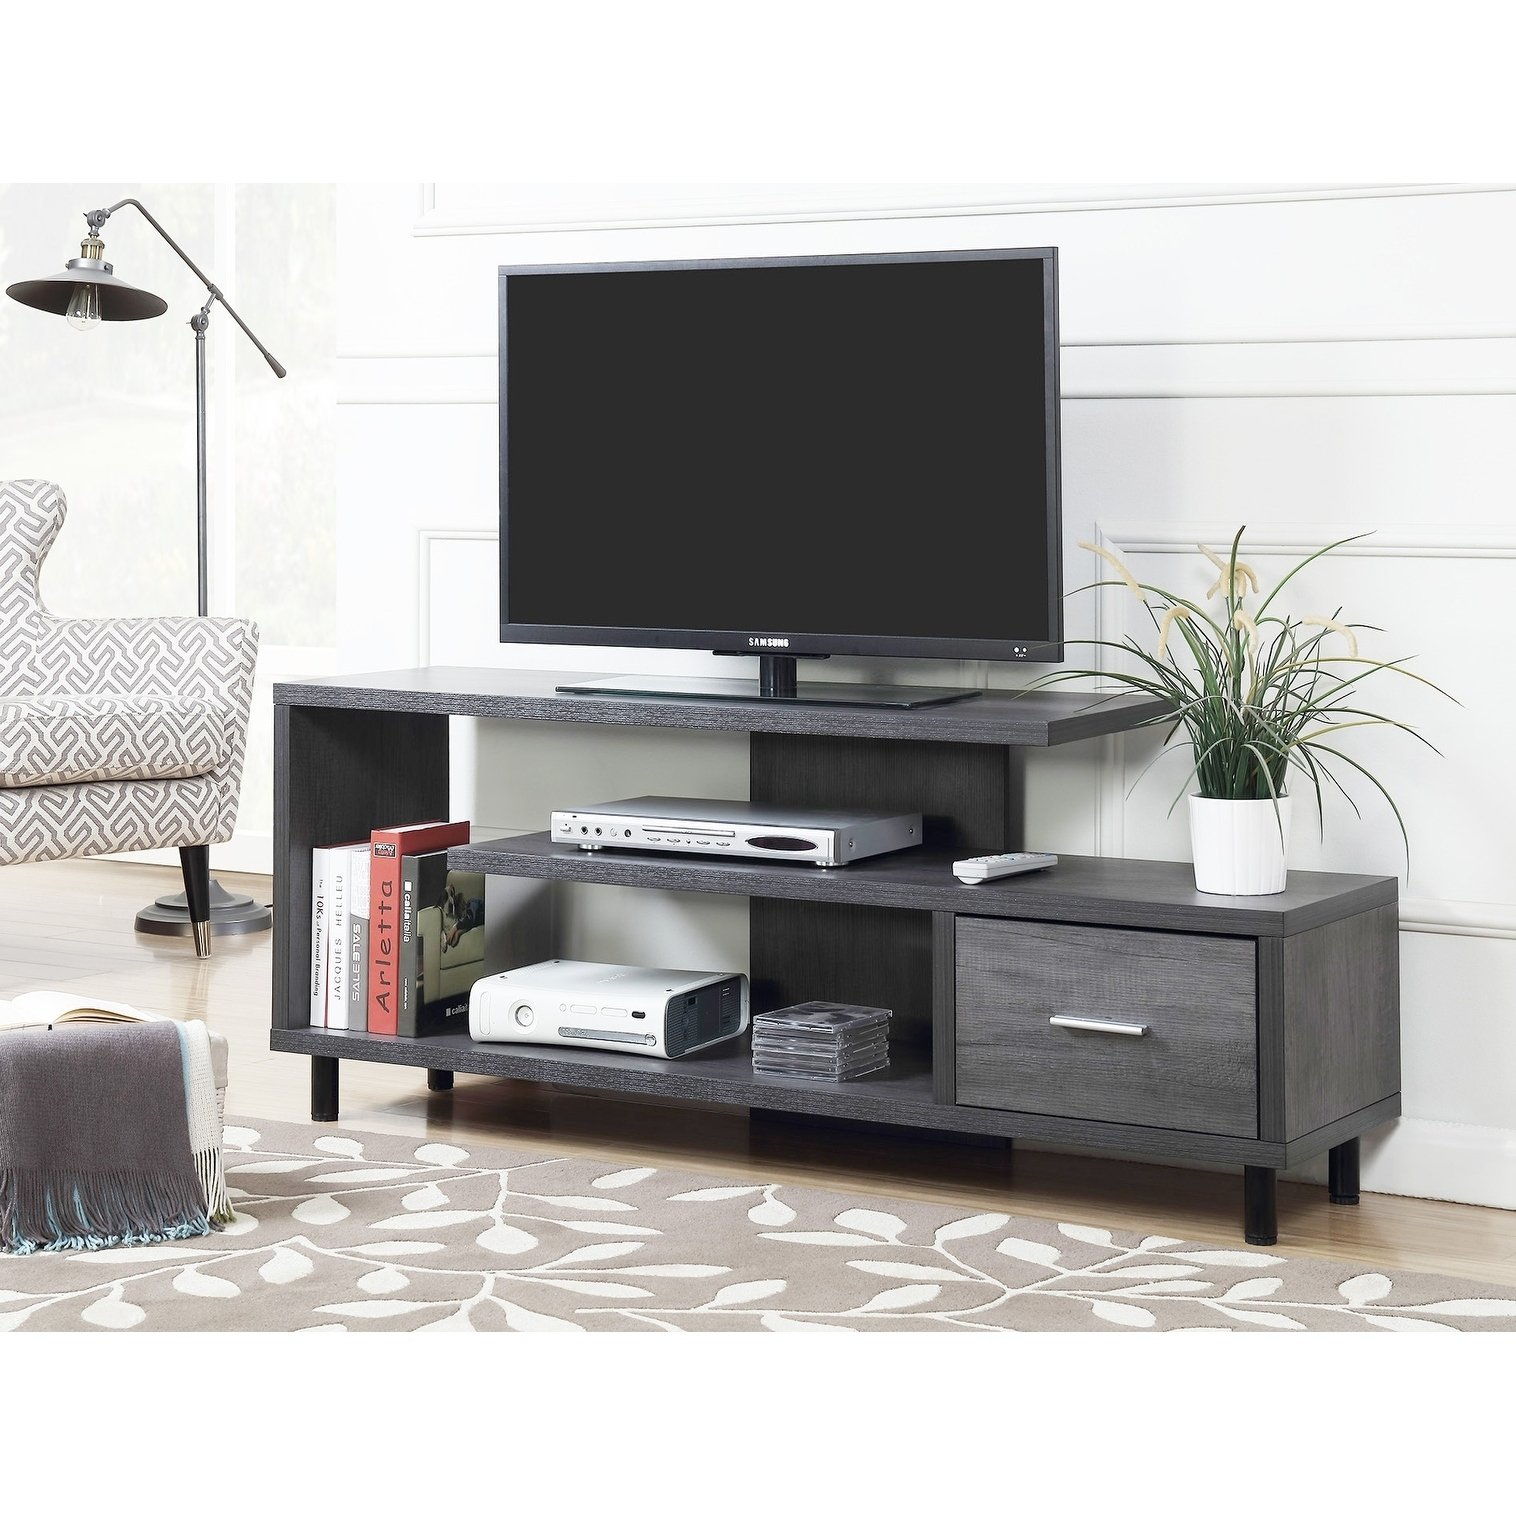 Buy Grey, 42 - 60 Inches Tv Stands & Entertainment Centers Online At within Rowan 64 Inch Tv Stands (Image 11 of 30)